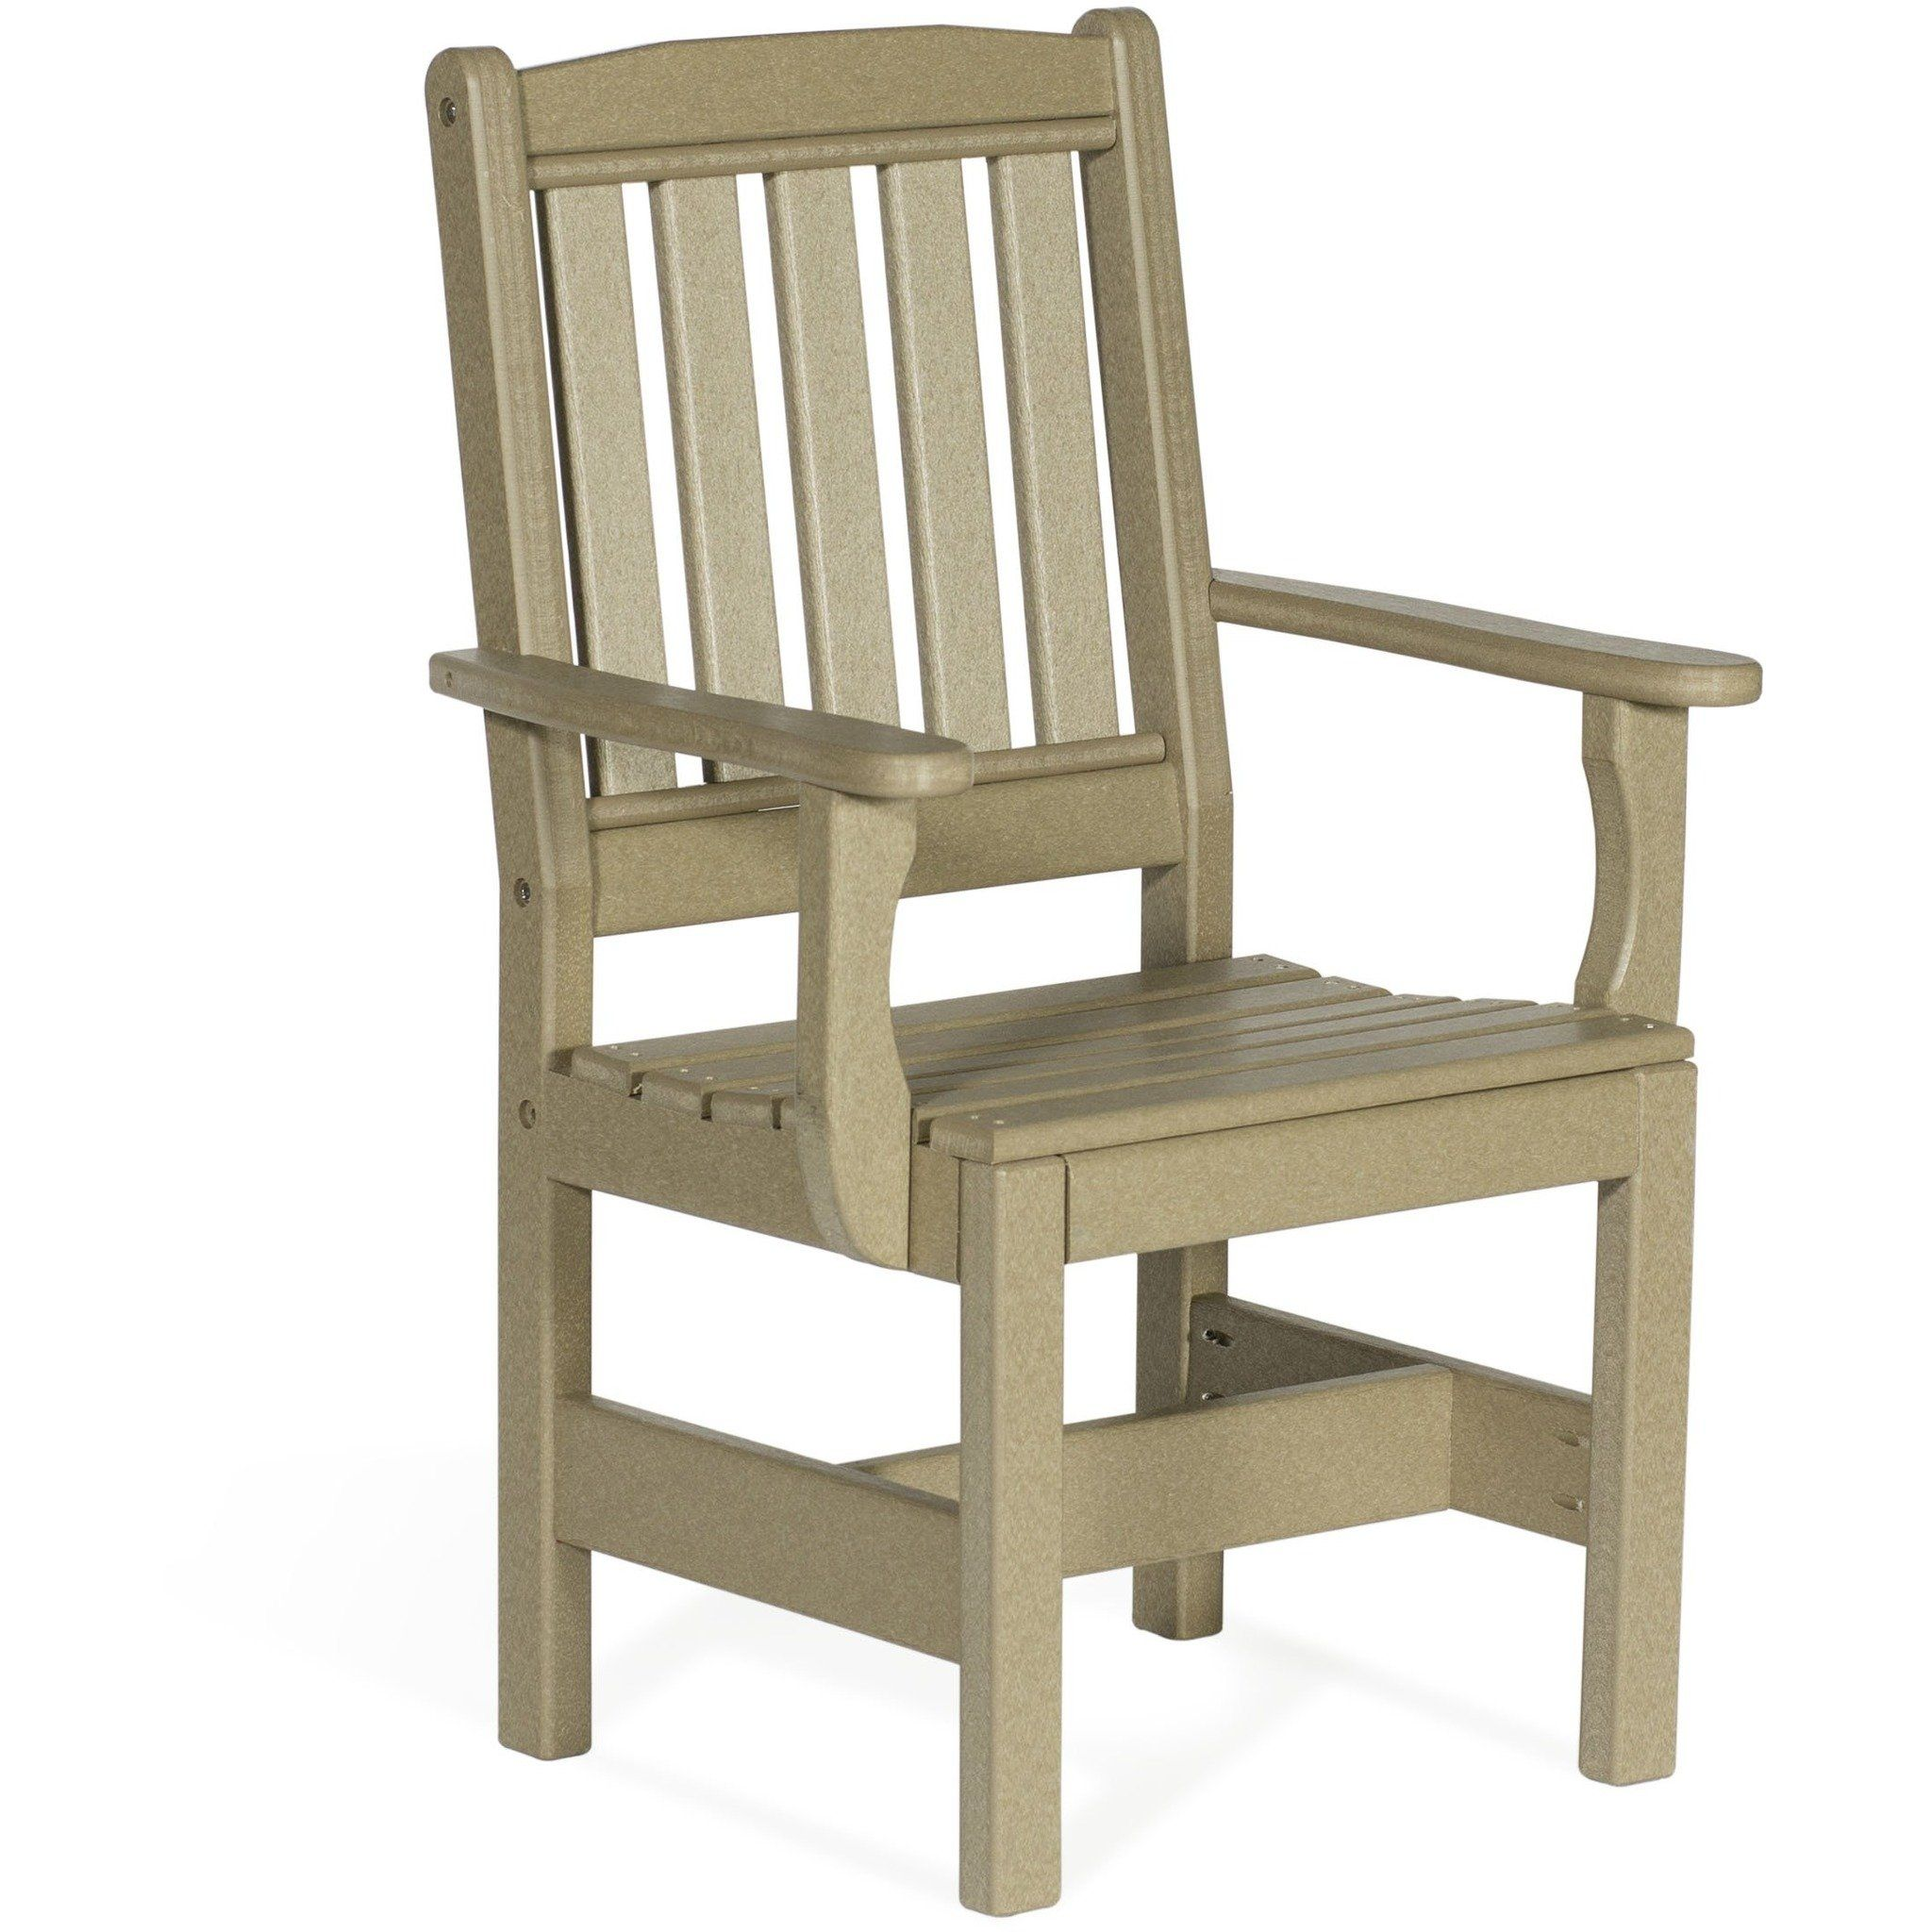 Leisure Lawns Amish Made Recycled Plastic English Garden Chair